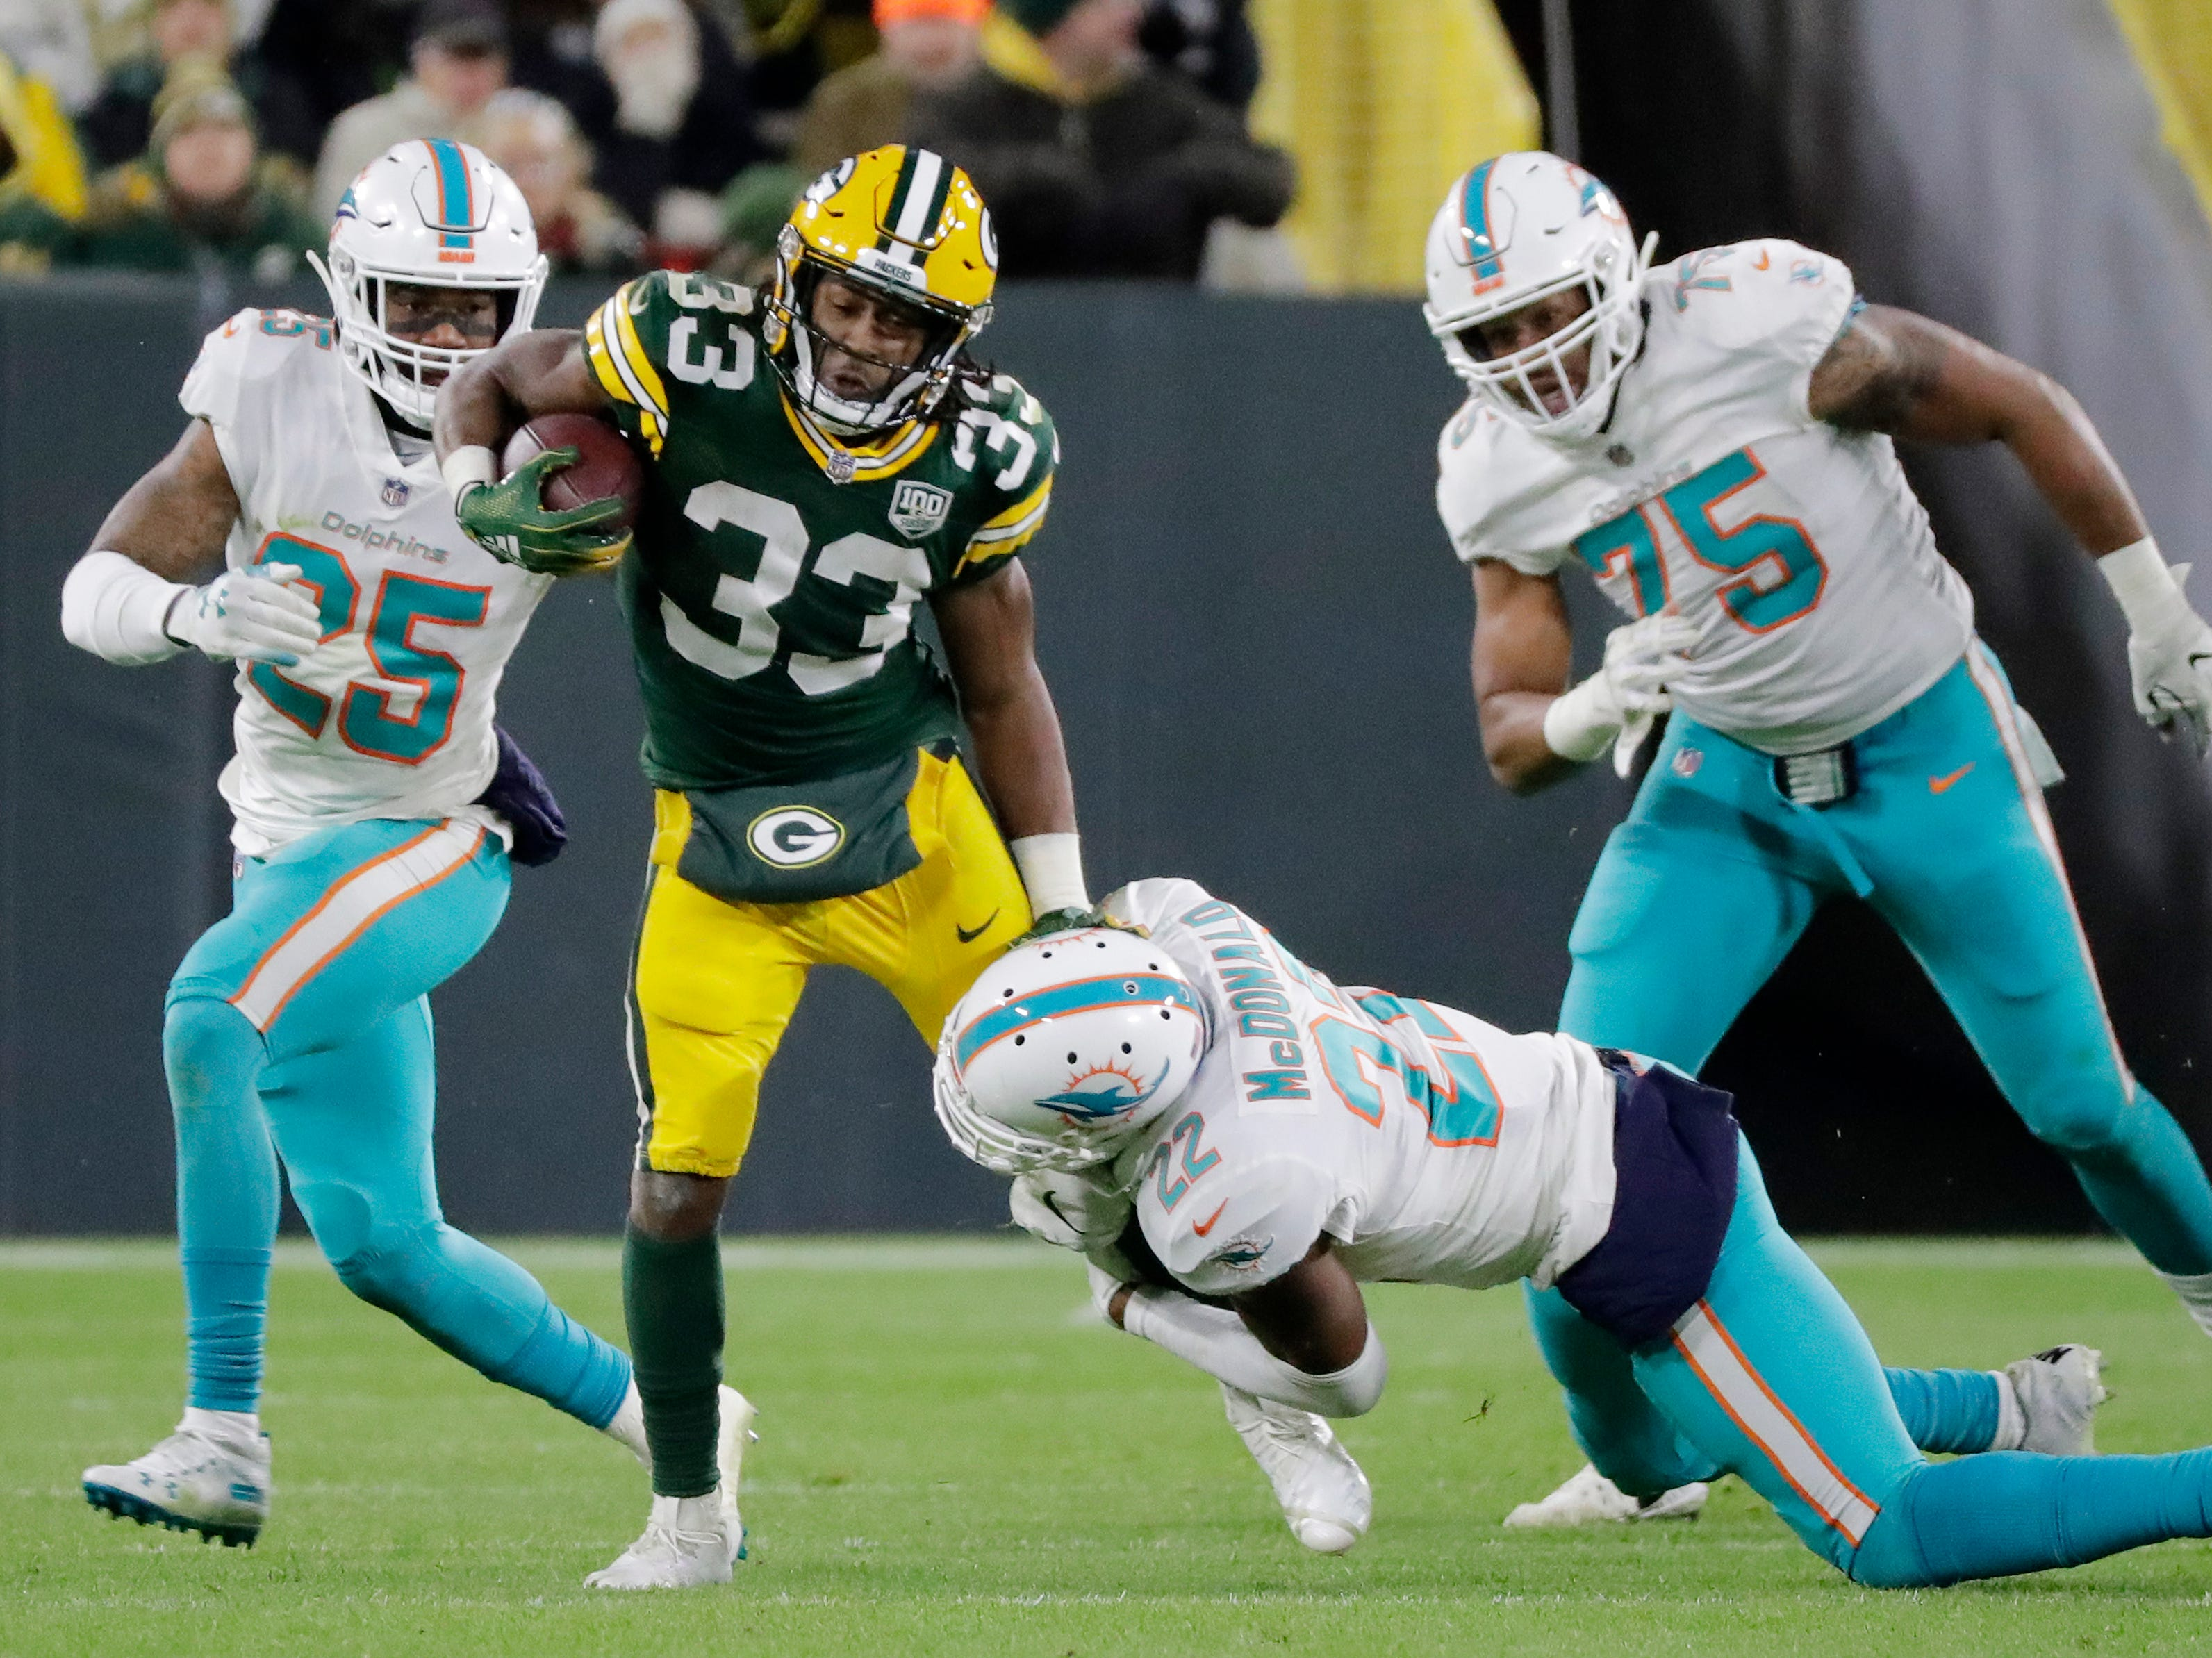 Green Bay Packers running back Aaron Jones (33) rushes against the Miami Dolphins at Lambeau Field on Sunday, November 11, 2018 in Green Bay, Wis.Adam Wesley/USA TODAY NETWORK-Wisconsin